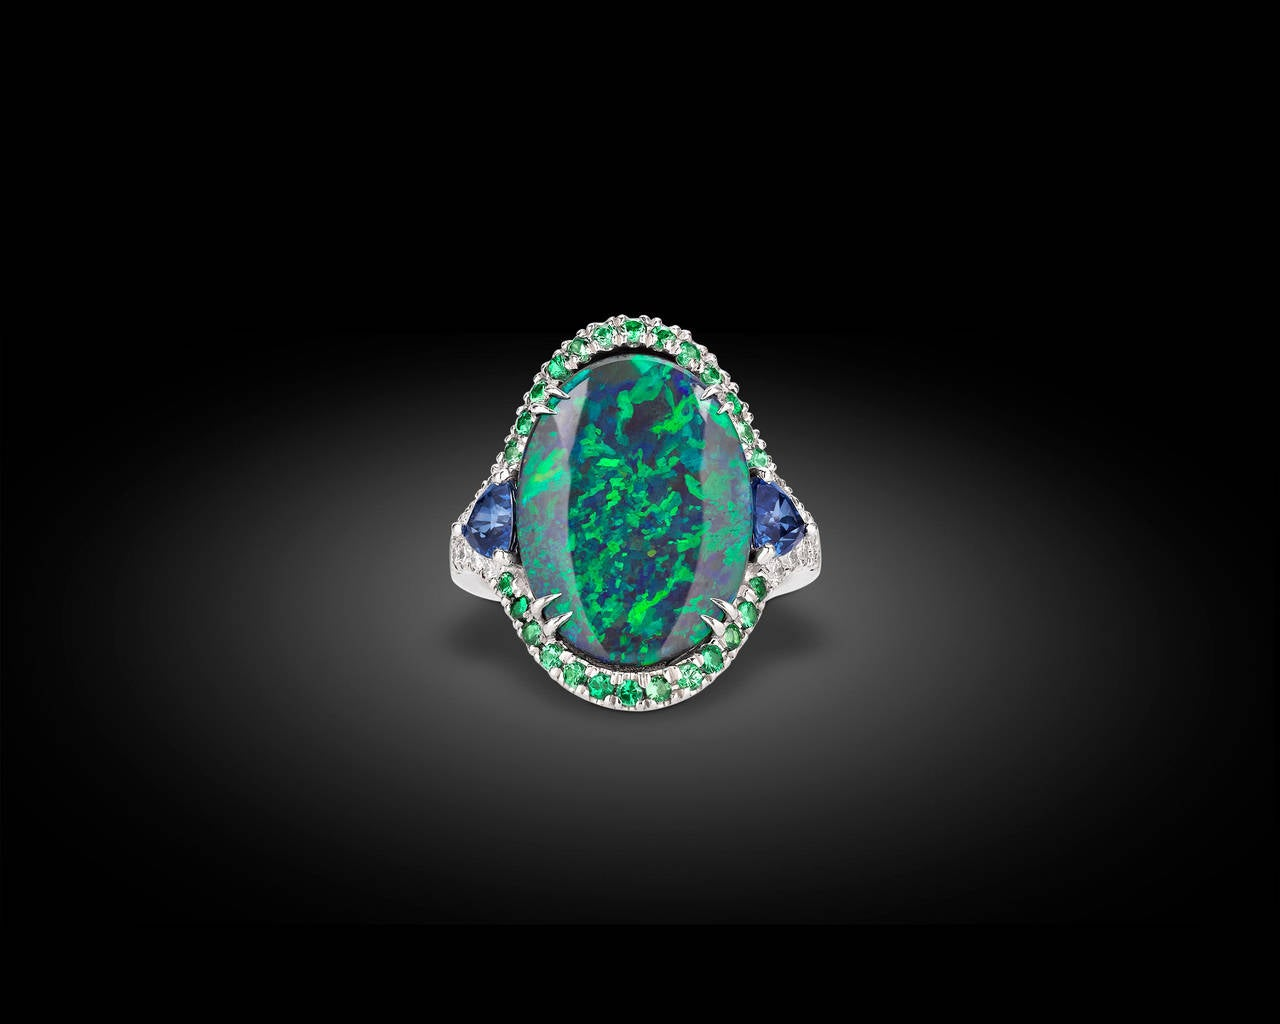 A vision of kaleidoscopic color, this extremely rare Lightning Ridge black opal displays an impressive range of iridescent blue and green hues. The remarkable color of the 3.60-carat opal is perfectly accented by a halo of colored gemstones,